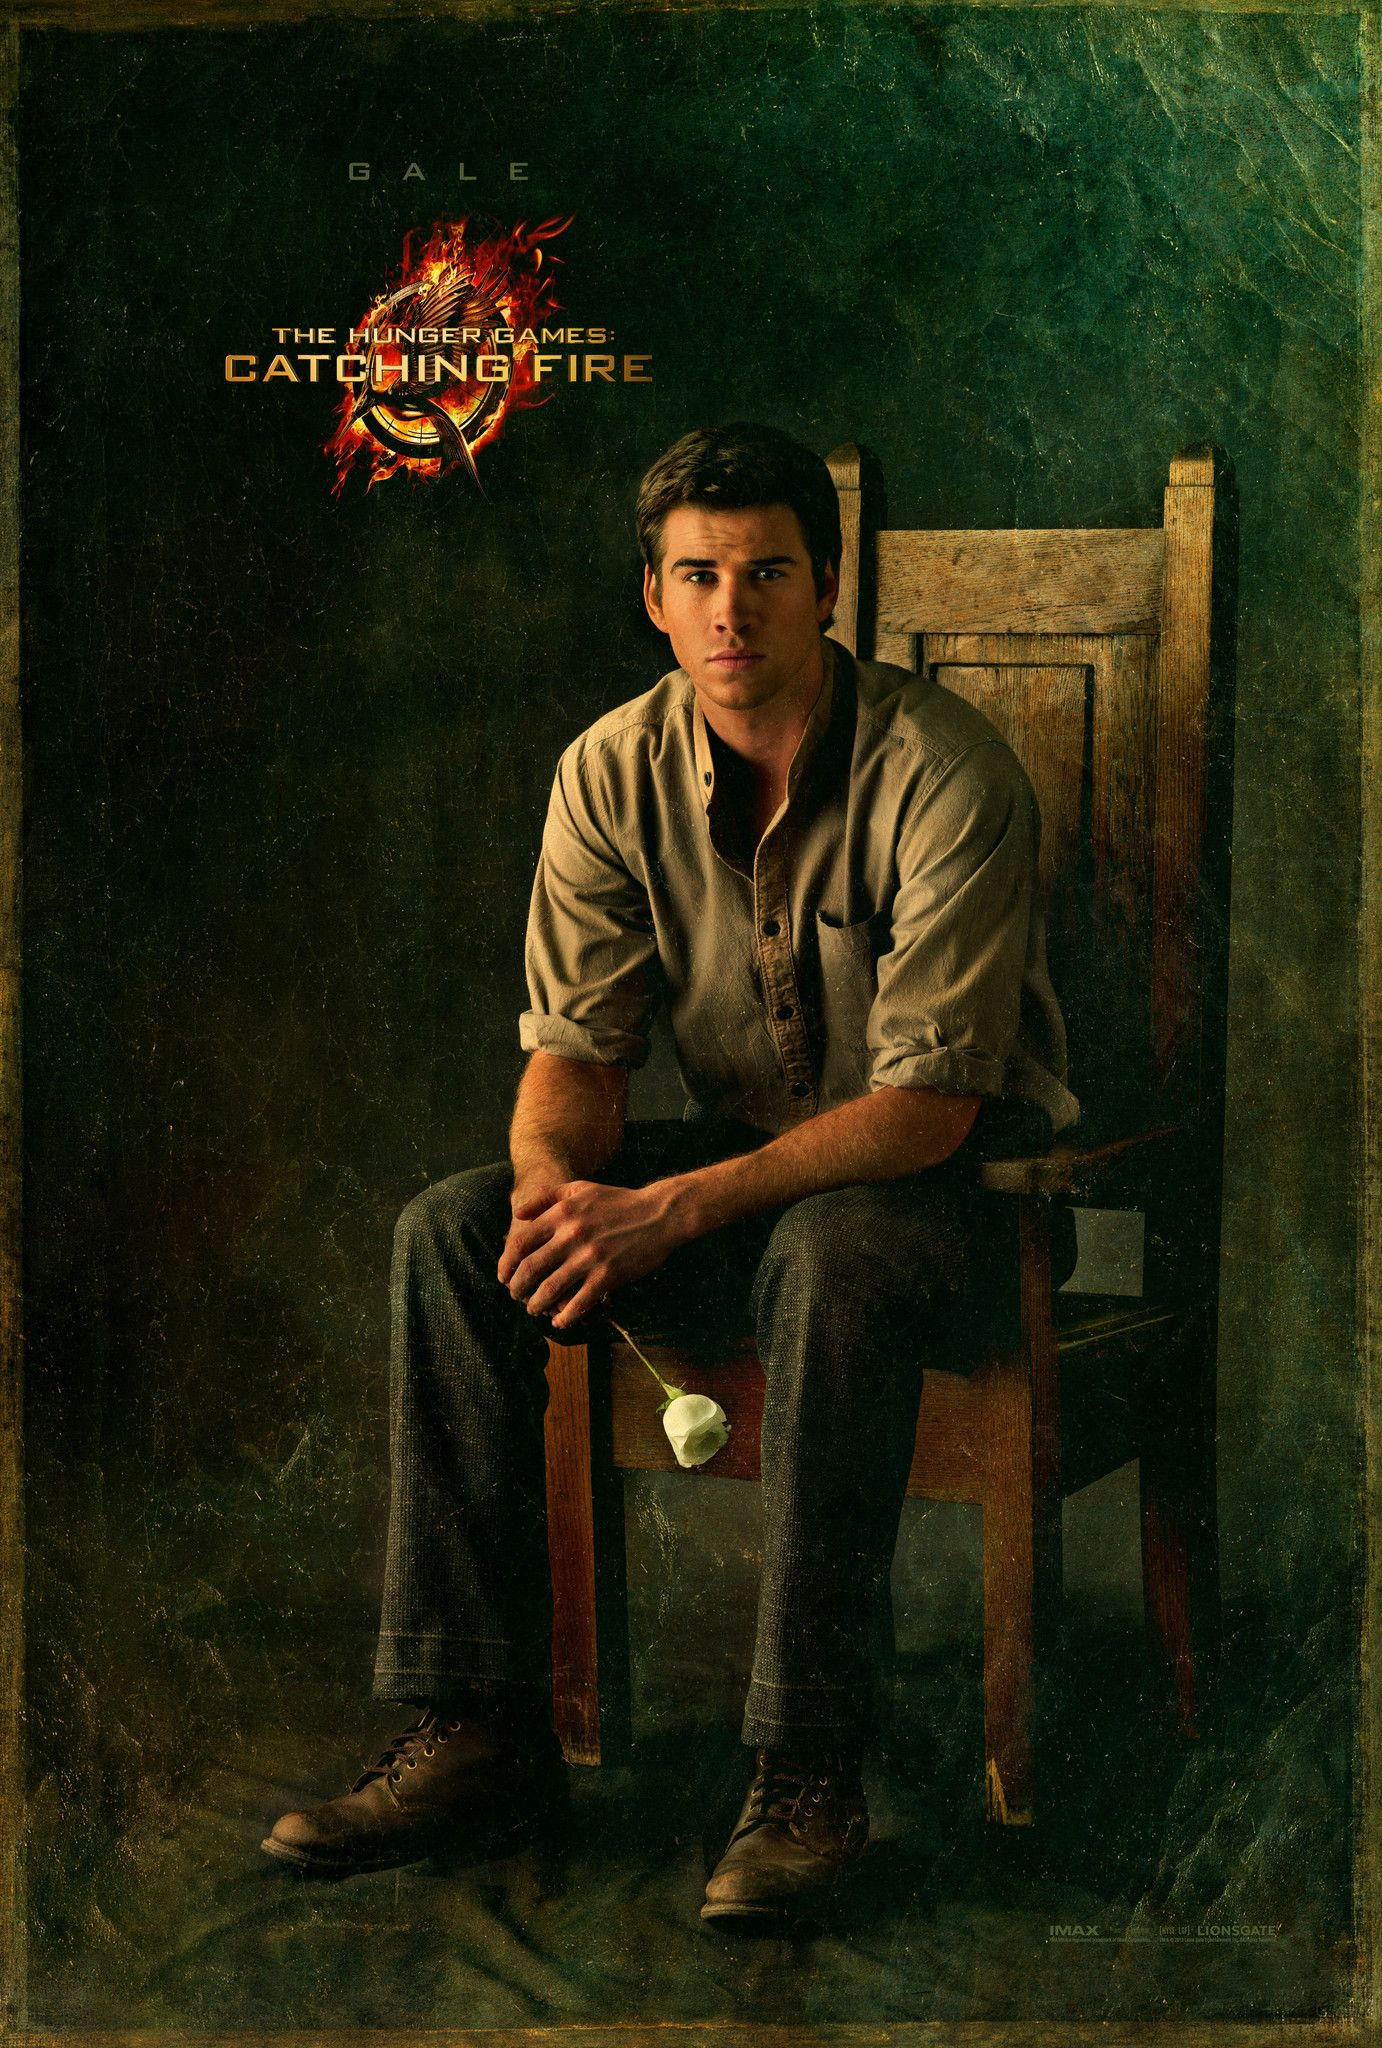 Pictures & Photos from The Hunger Games: Catching Fire - IMDb